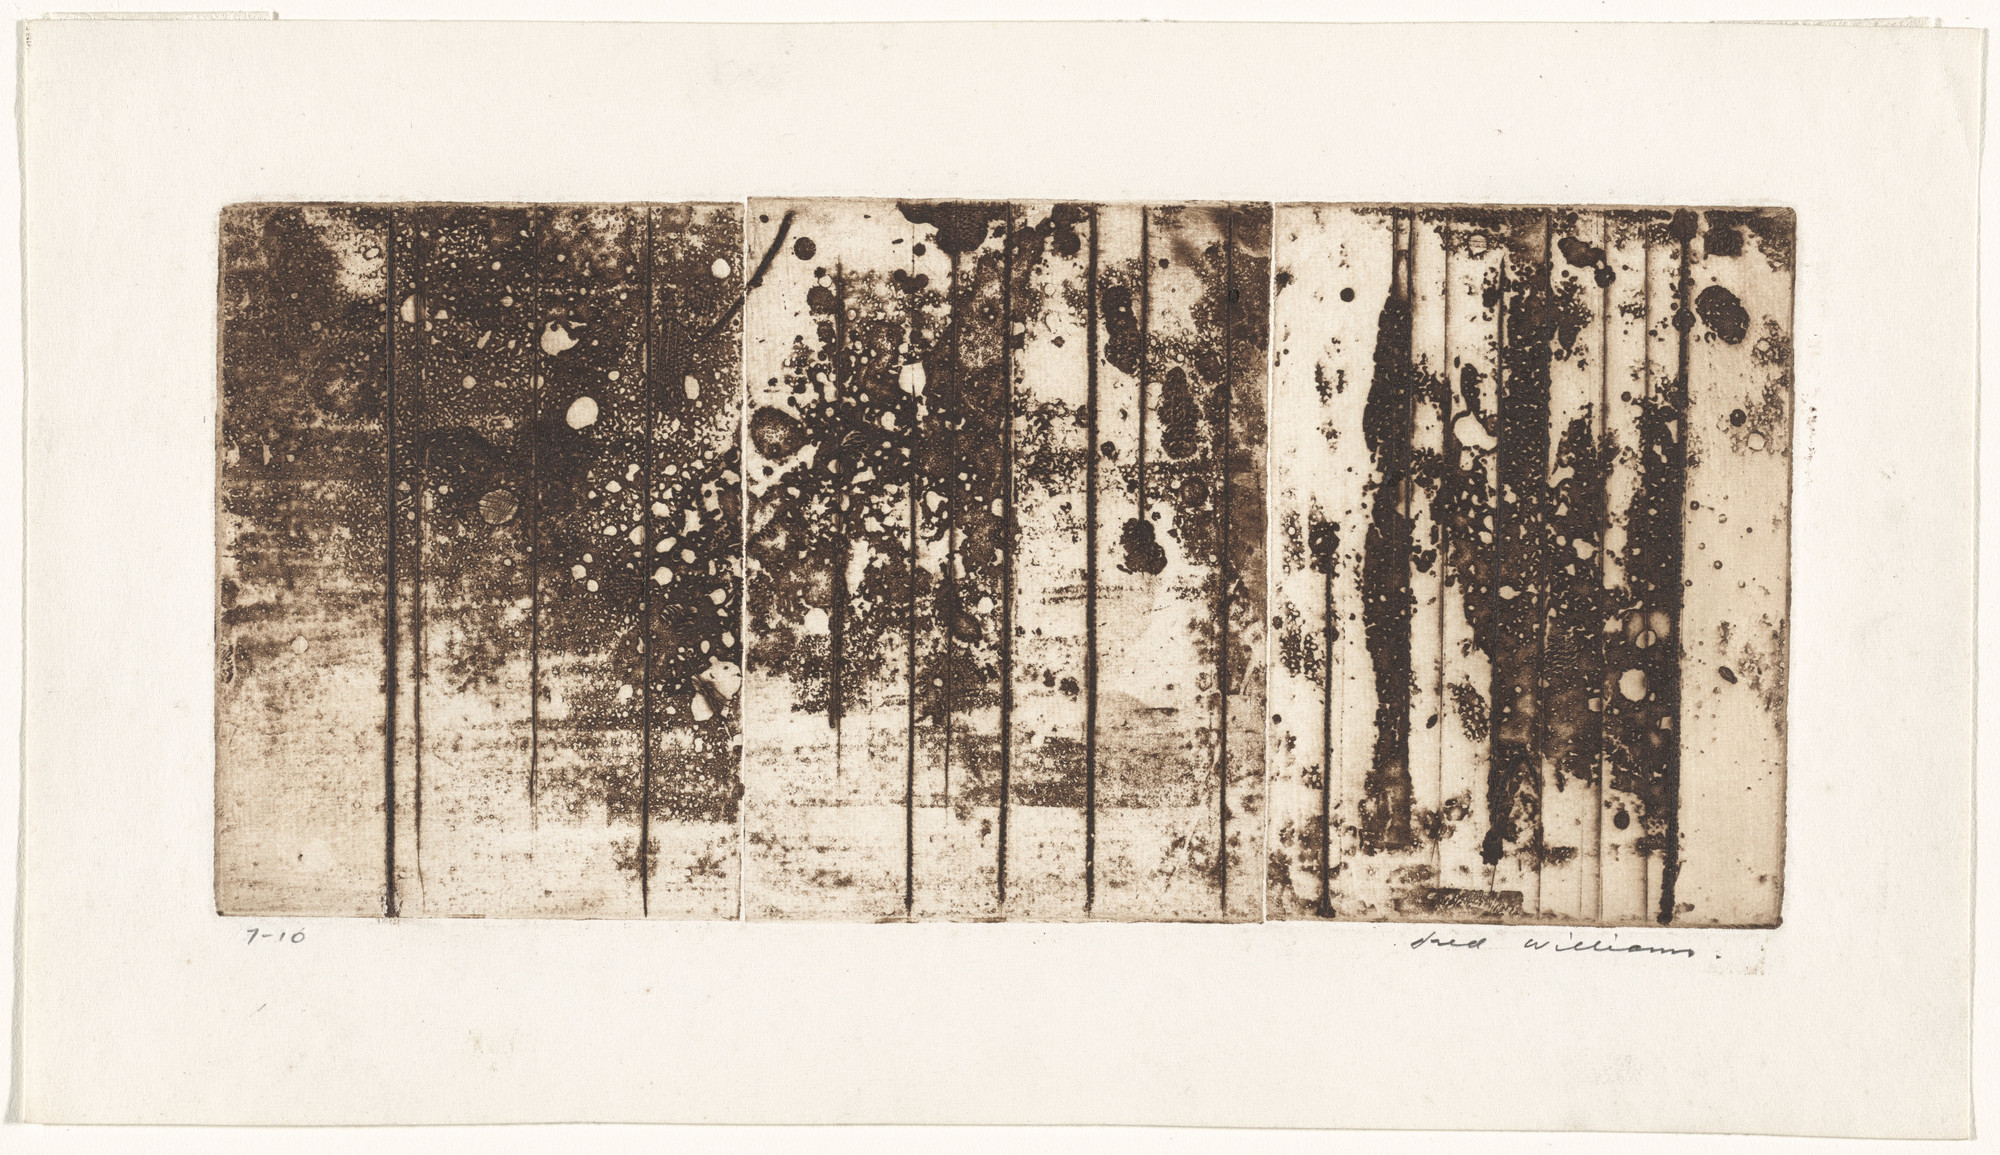 Fred Williams. Landscape Triptych No. 2, State II/IV. 1962